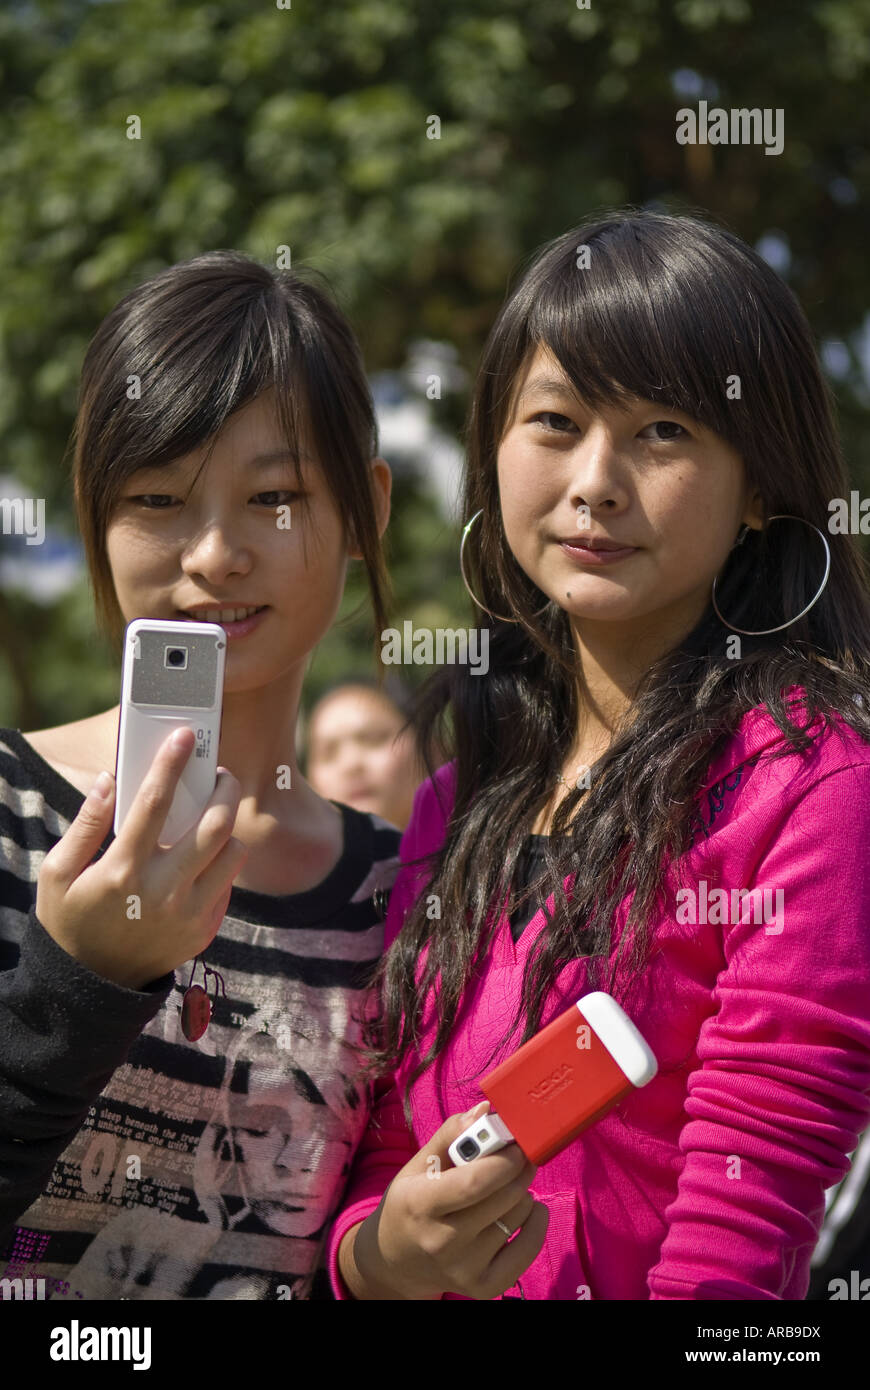 Young women with cellular phones text message, Quanzhou, Fujian Province, China - Stock Image